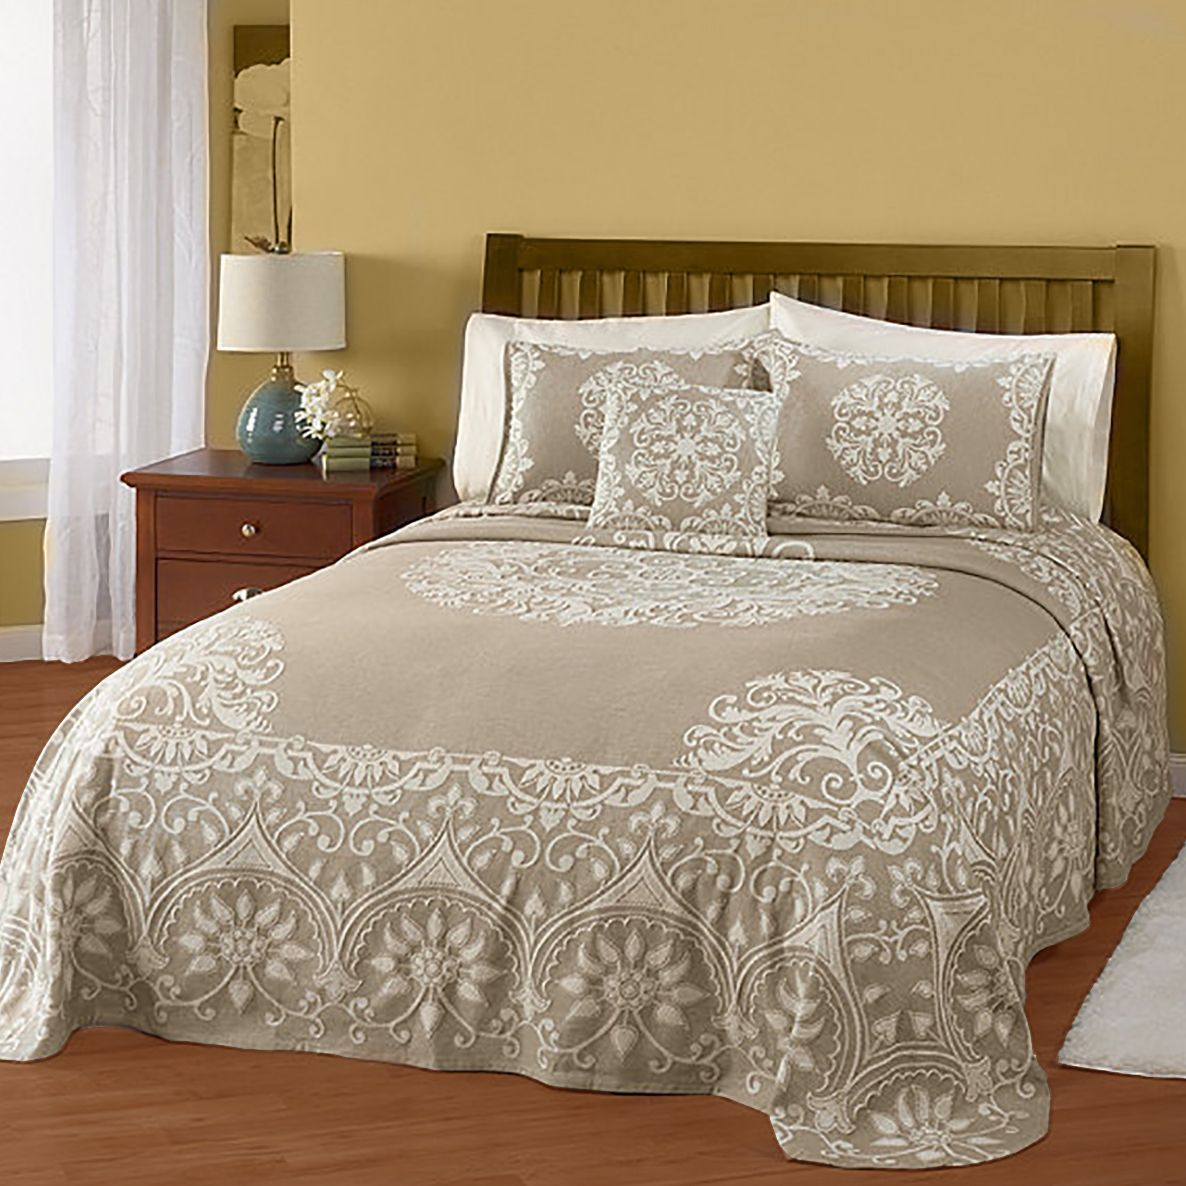 Ribbon embroidery bedspread designs - Ambiance Cotton Jacquard Bedspread